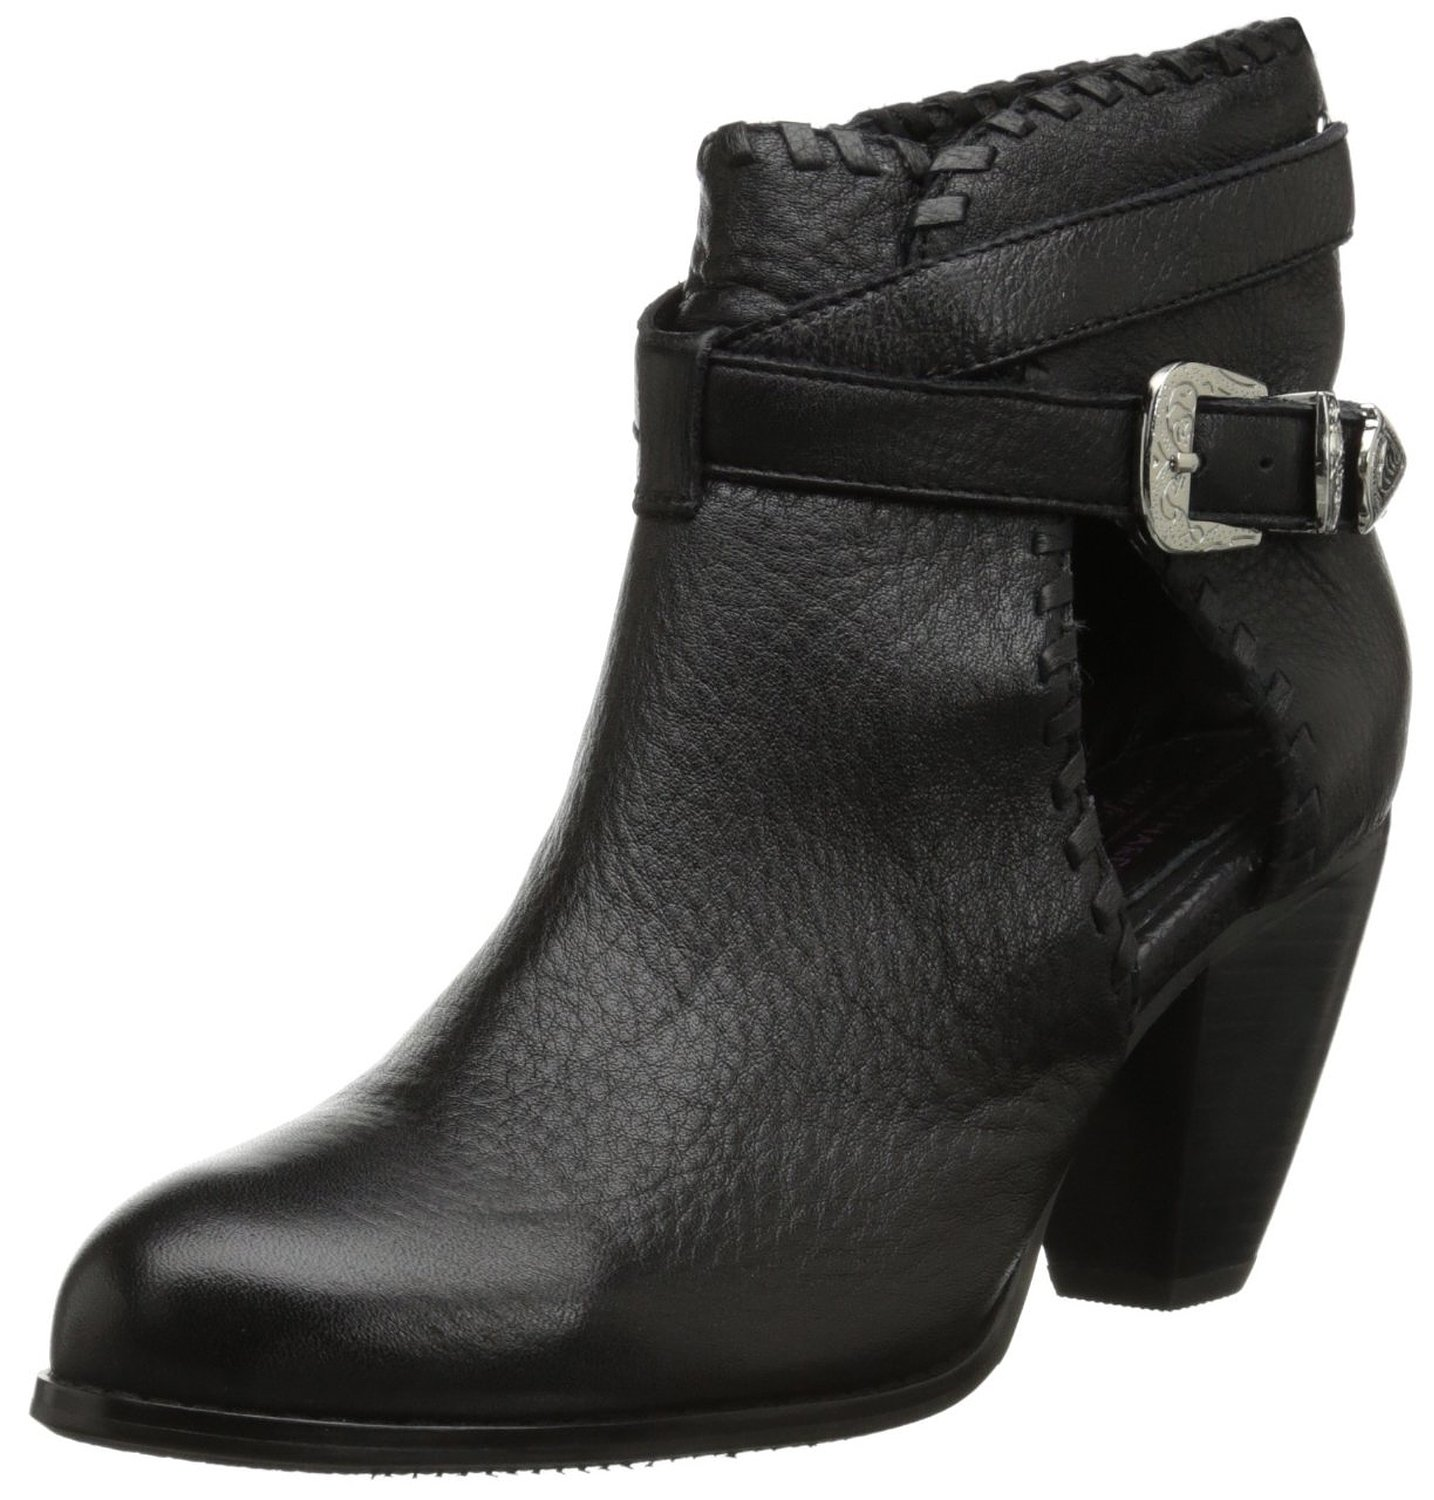 Amazon.com: Madison Harding Women's Olivia Black Leather Boot: Shoes